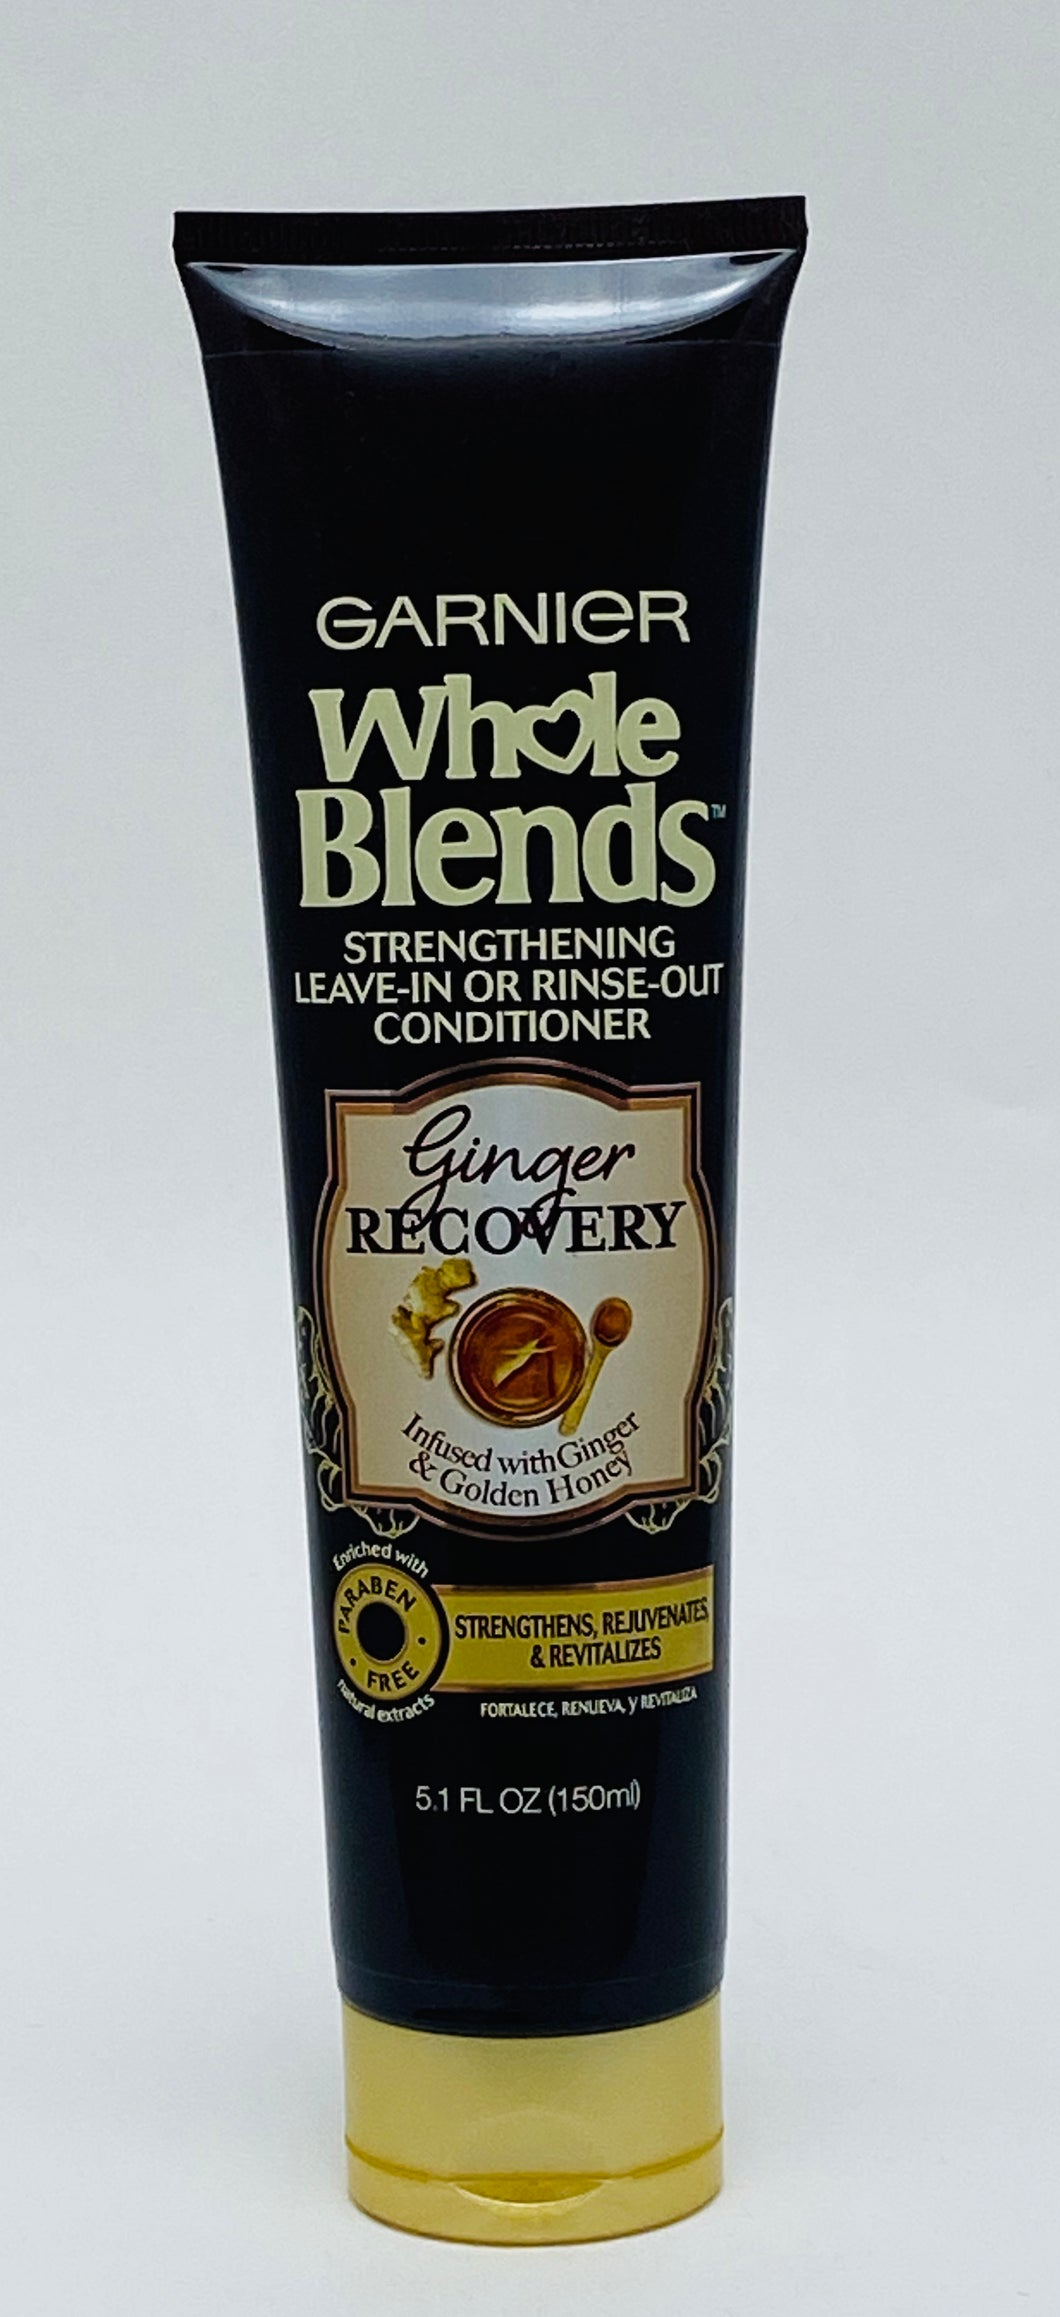 Garnier Whole Blends Strengthening Leave-in or Rinse-Out Conditioner Ginger Recovery Infused with Ginger and Golden Honey - 5.1 FL OZ (150ml)